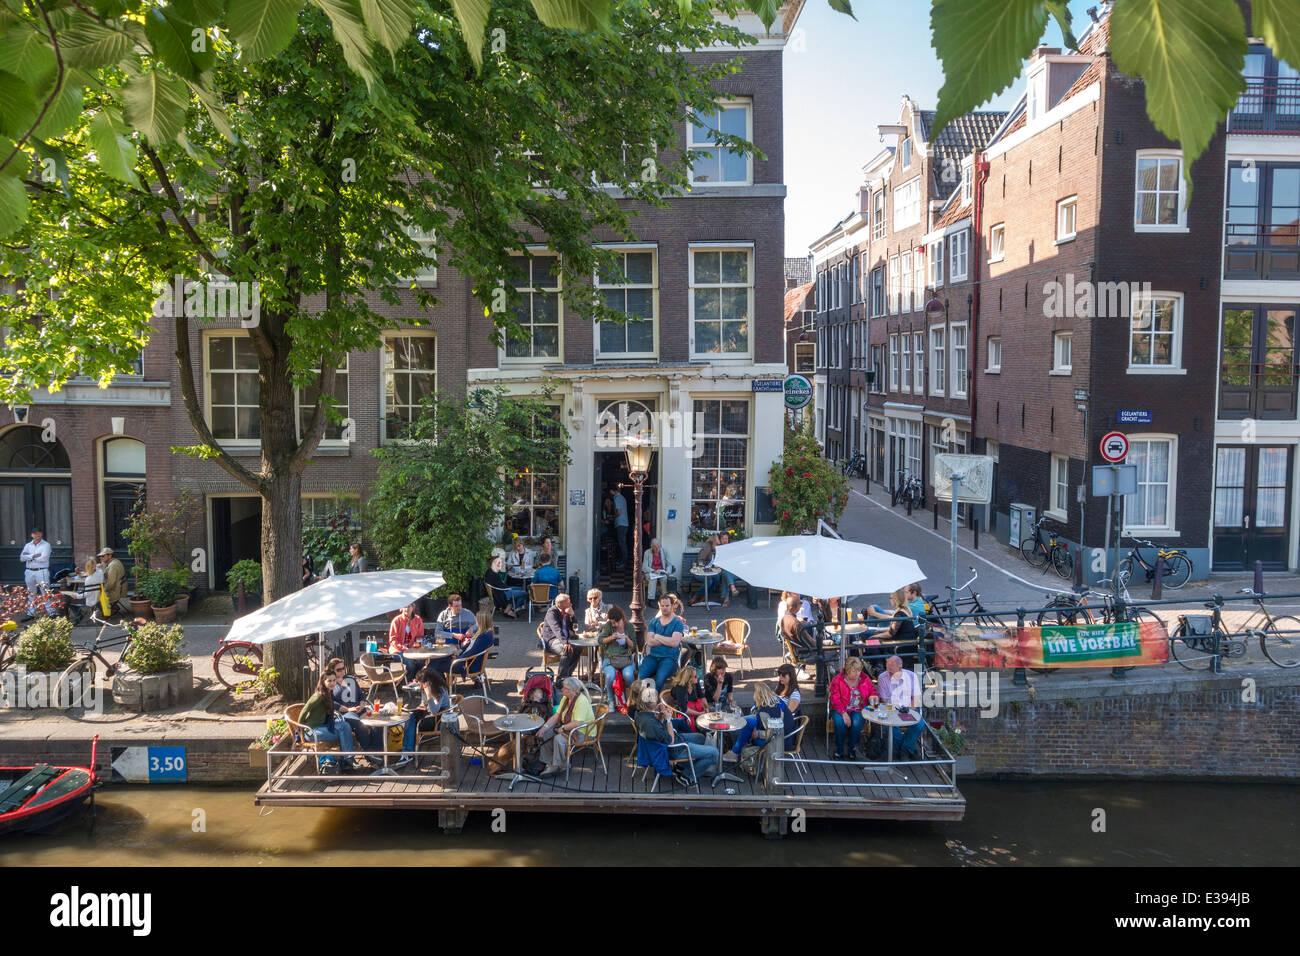 T Mobile Shop Amsterdam Amsterdam Amsterdam Cafe 39t Smalle On The Egelantiersgracht In The